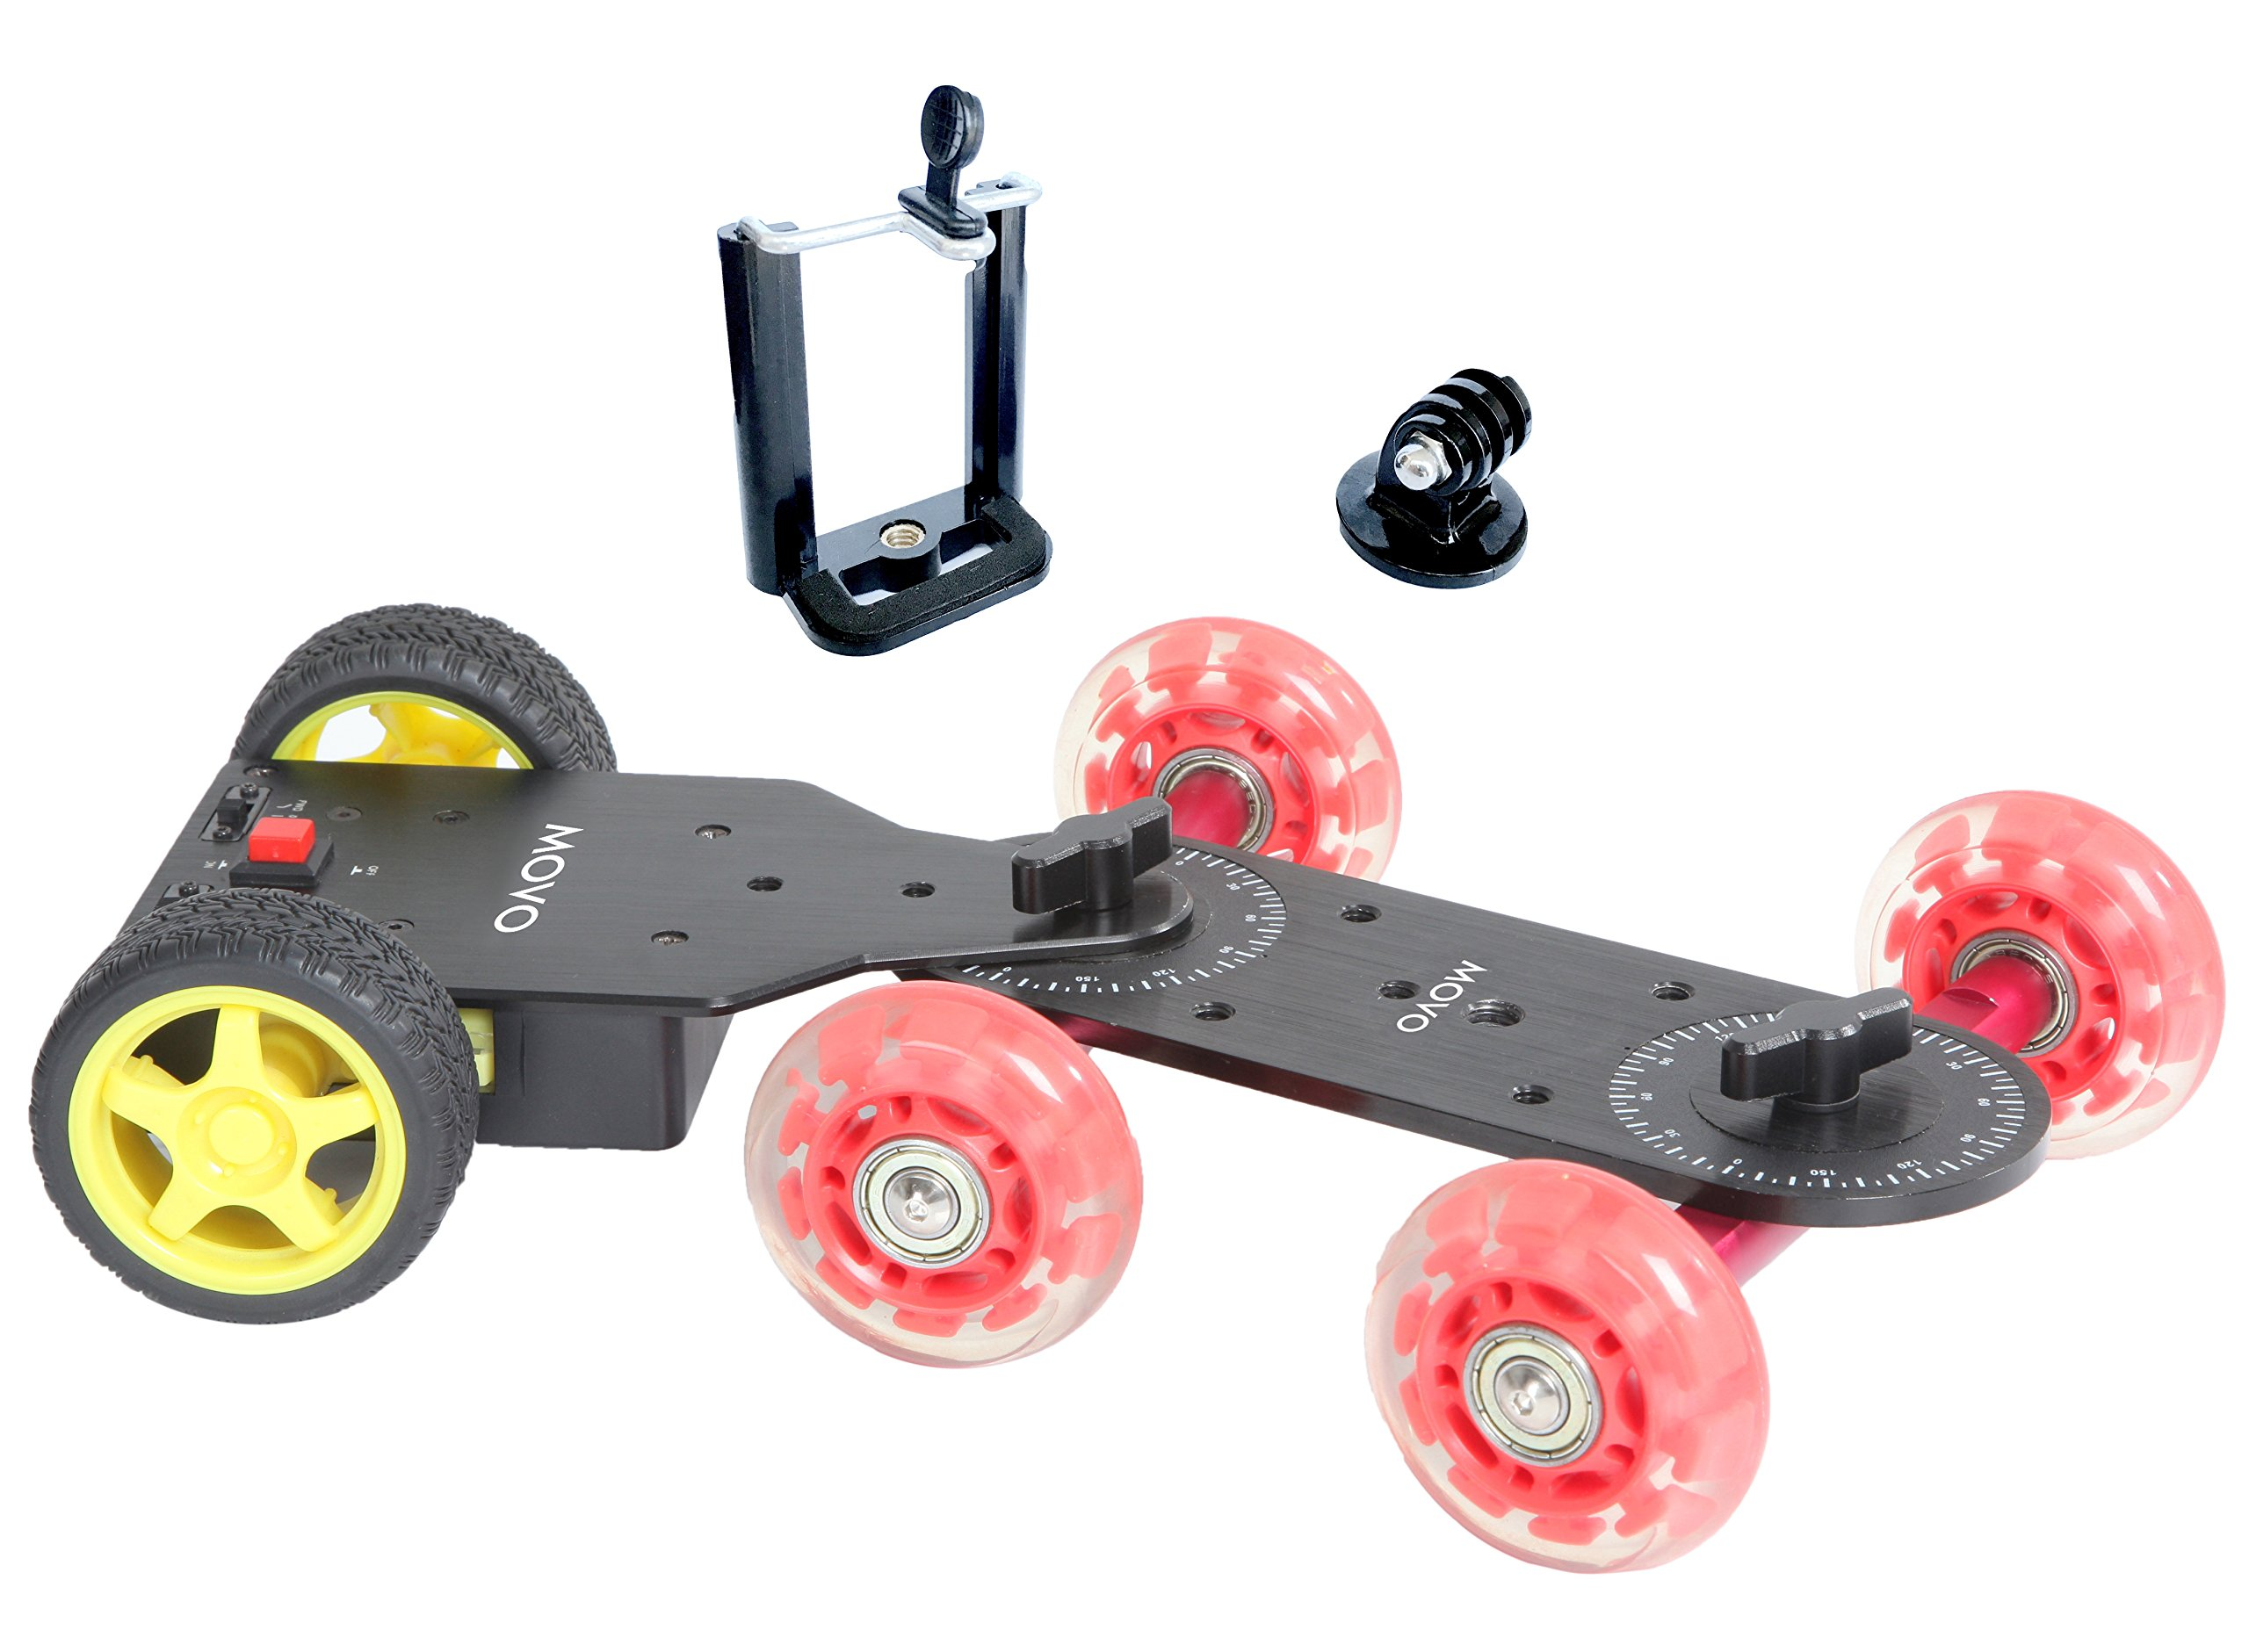 Movo Motorized Cine Skater Table Dolly Video Track Glider Bundle for DSLR Cameras, GoPro, iPhone, Android Smartphones (Short Version)